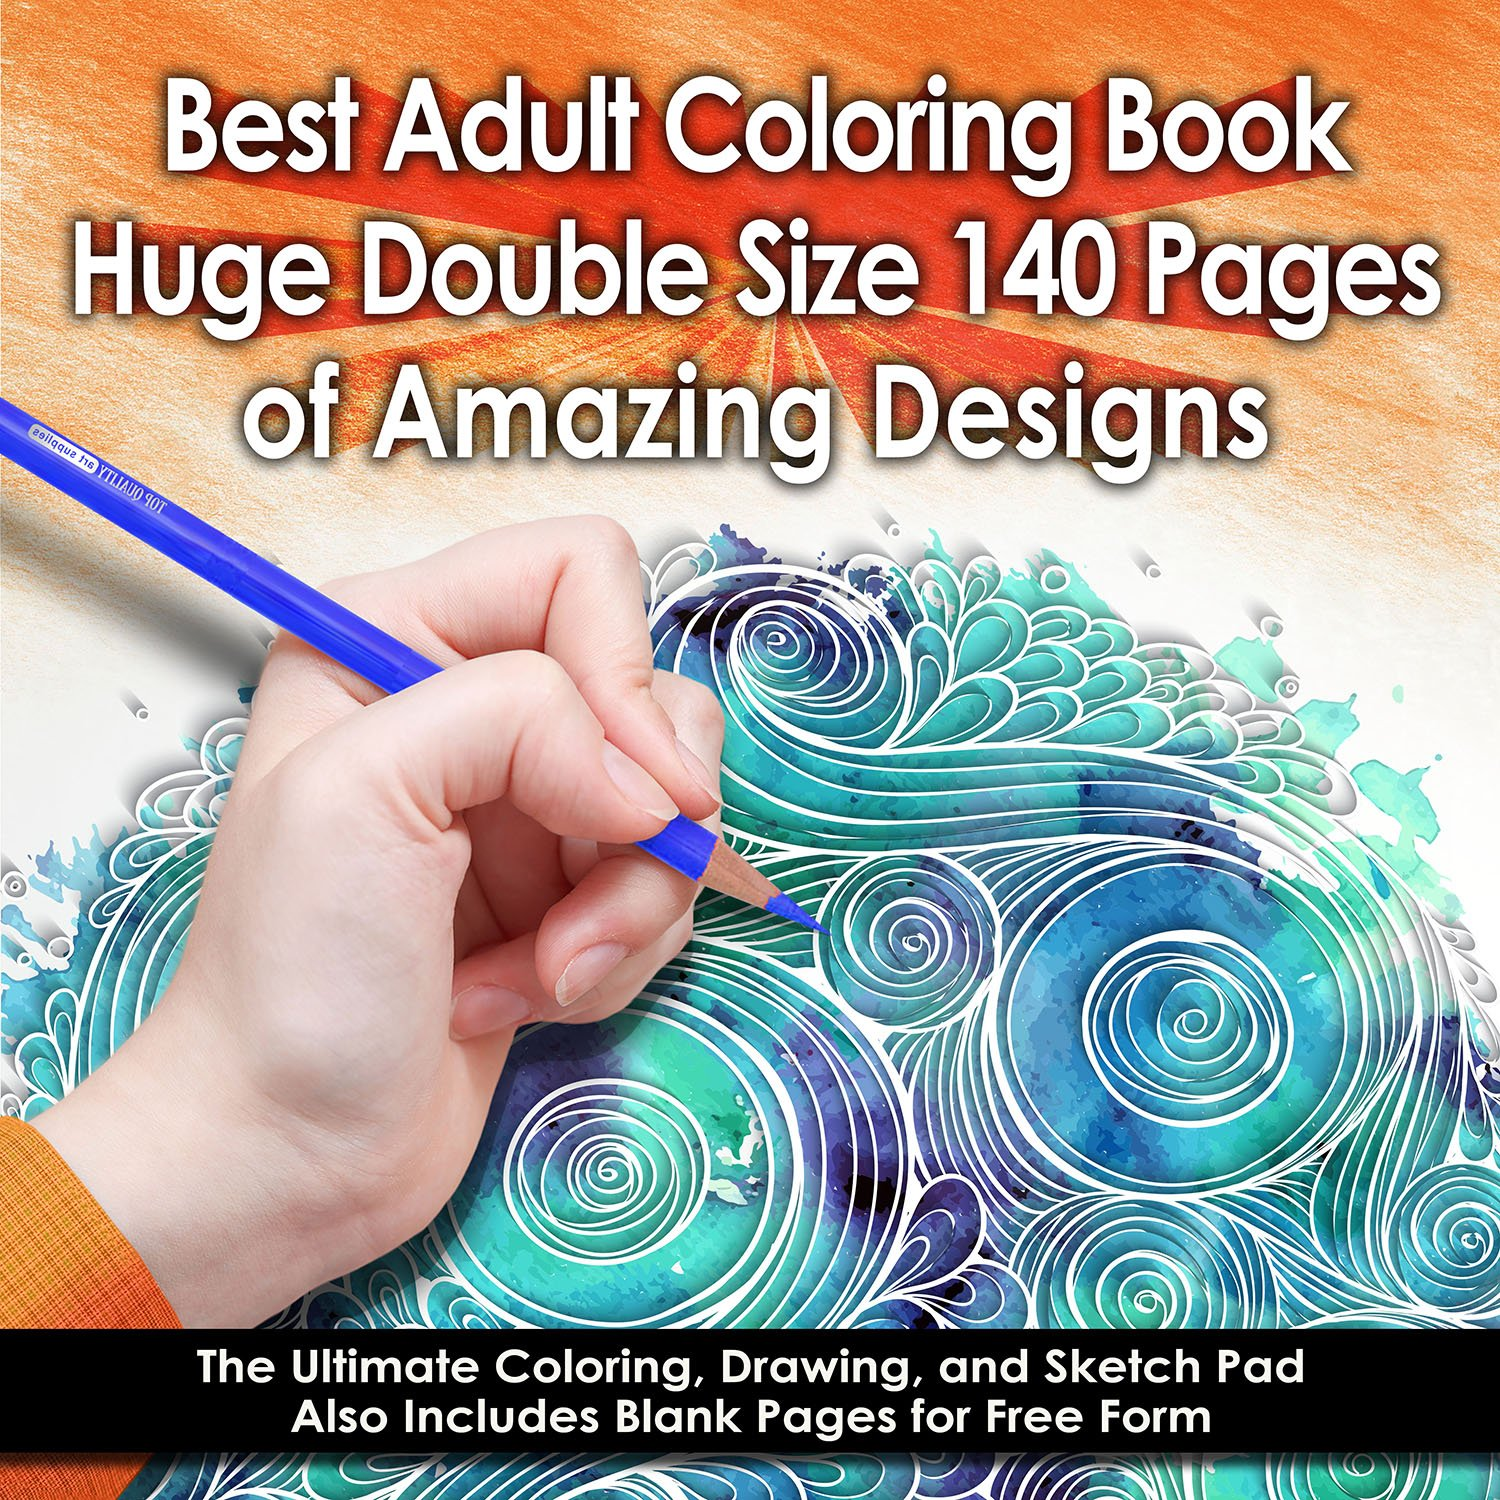 Best Adult Coloring Book (Double Size) - 140 Pages with 68 Designs - Amazing Designs & Stress Relieving Patterns including Mandalas, Geometric Shapes, an Animal - Perfect for Coloring & Sketching